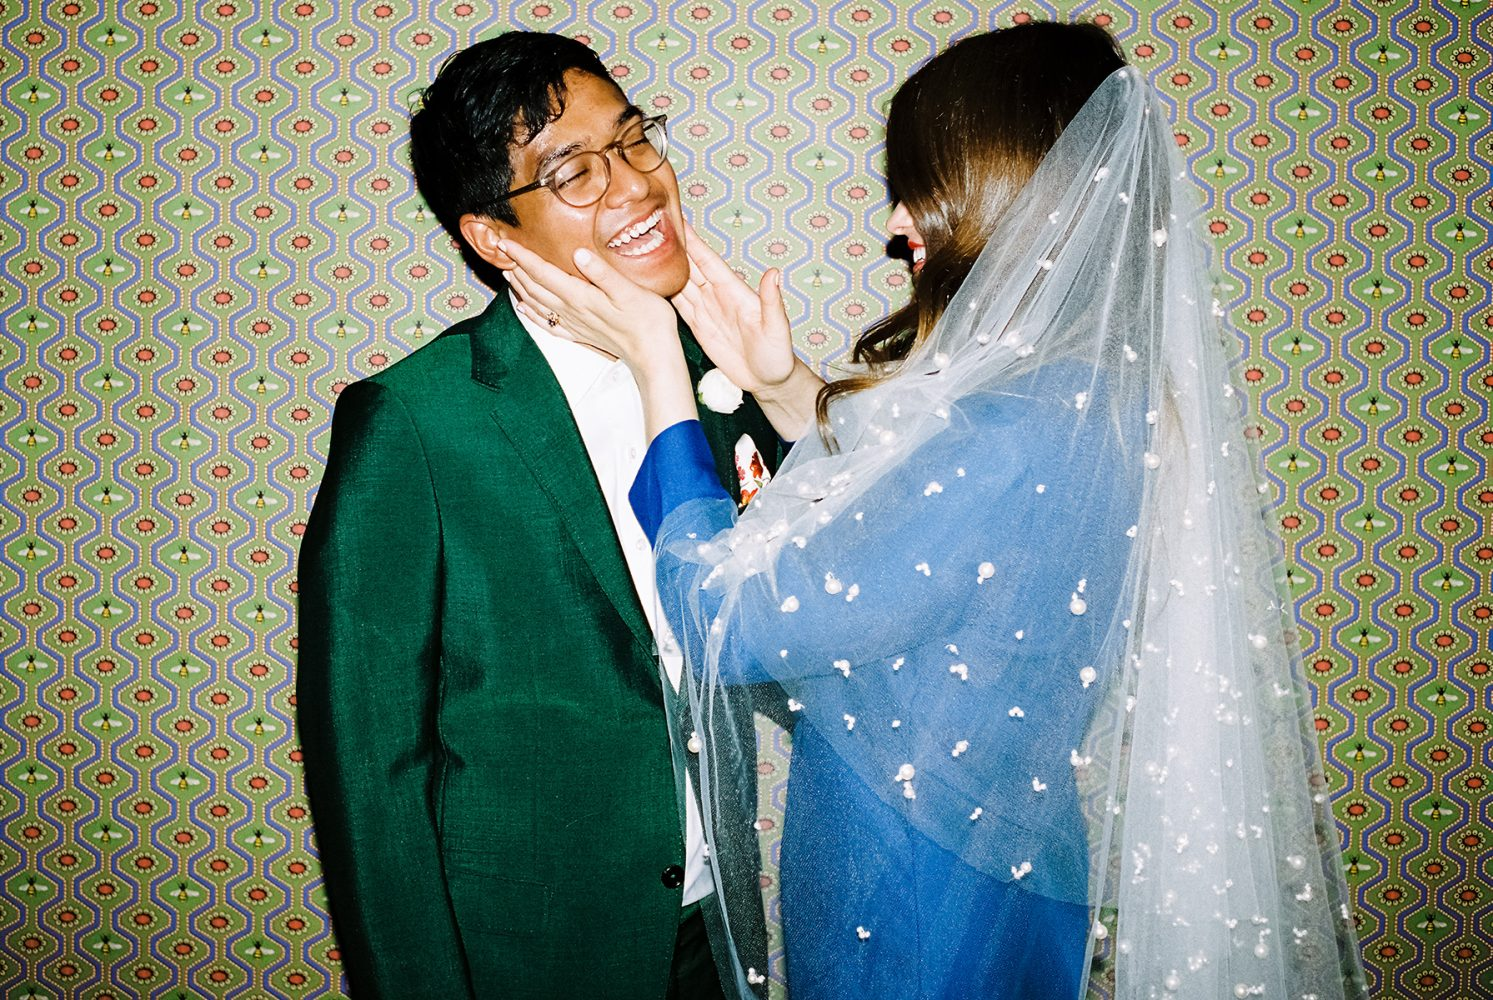 bride, groom and Gucci wallpaper ONONA New York wedding photographer film